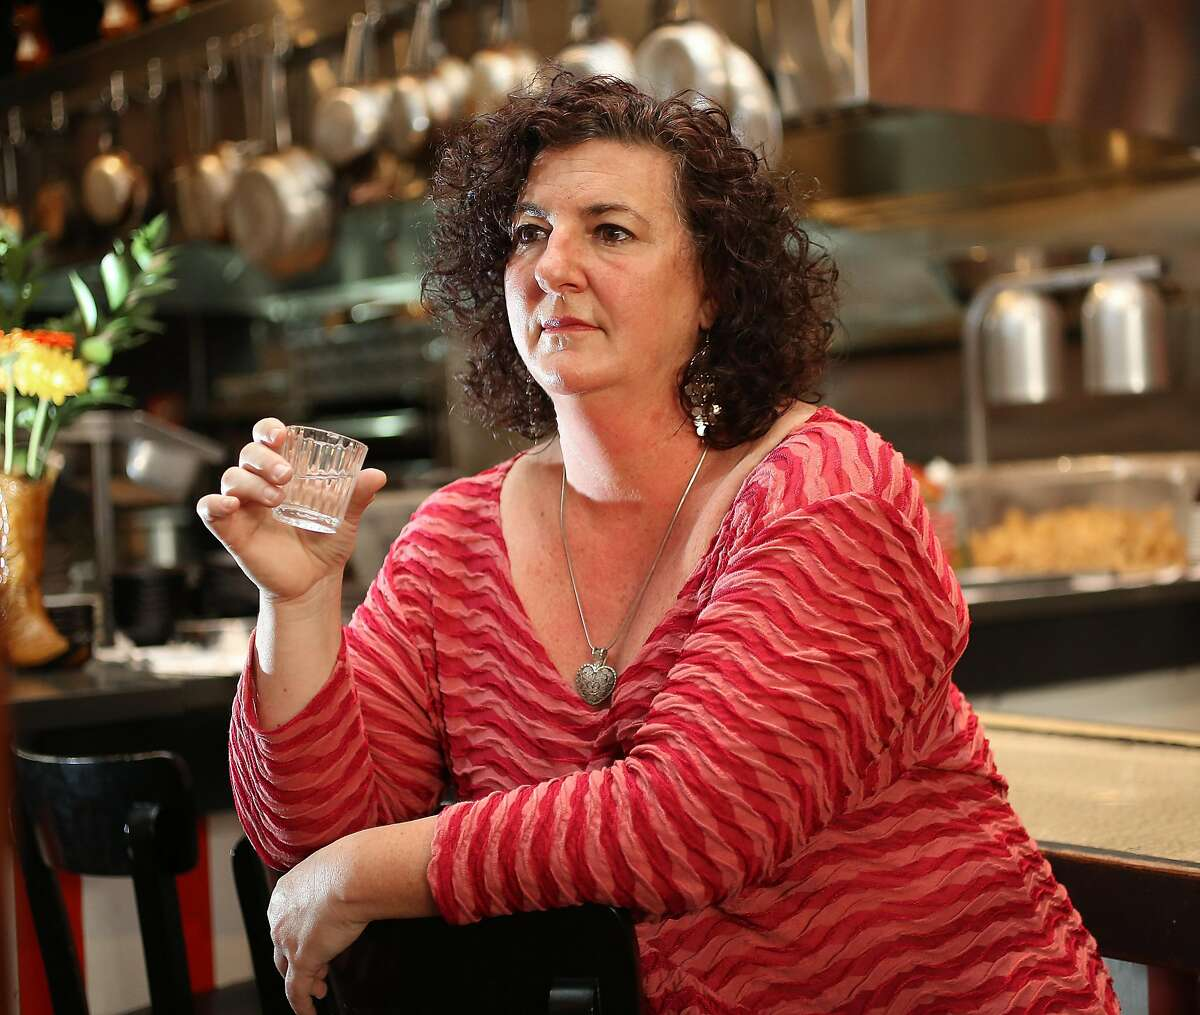 Local mezcal educator and activist Susan Coss drinks mezcal at Lolo on Thursday, February 8, 2018, in San Francisco, Ca.